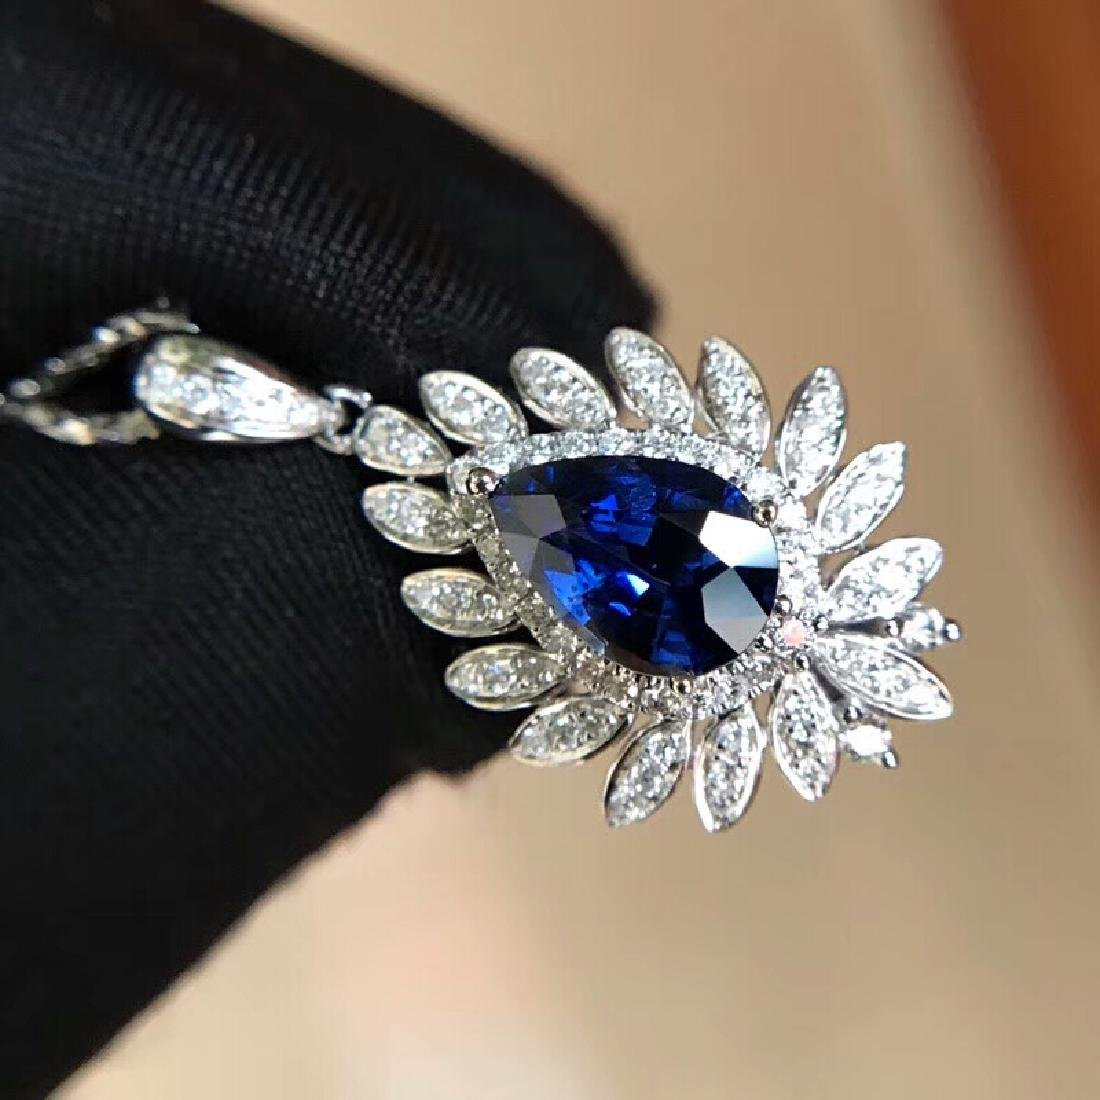 1.3ct Sapphire Pendant in 18kt White Gold - 4